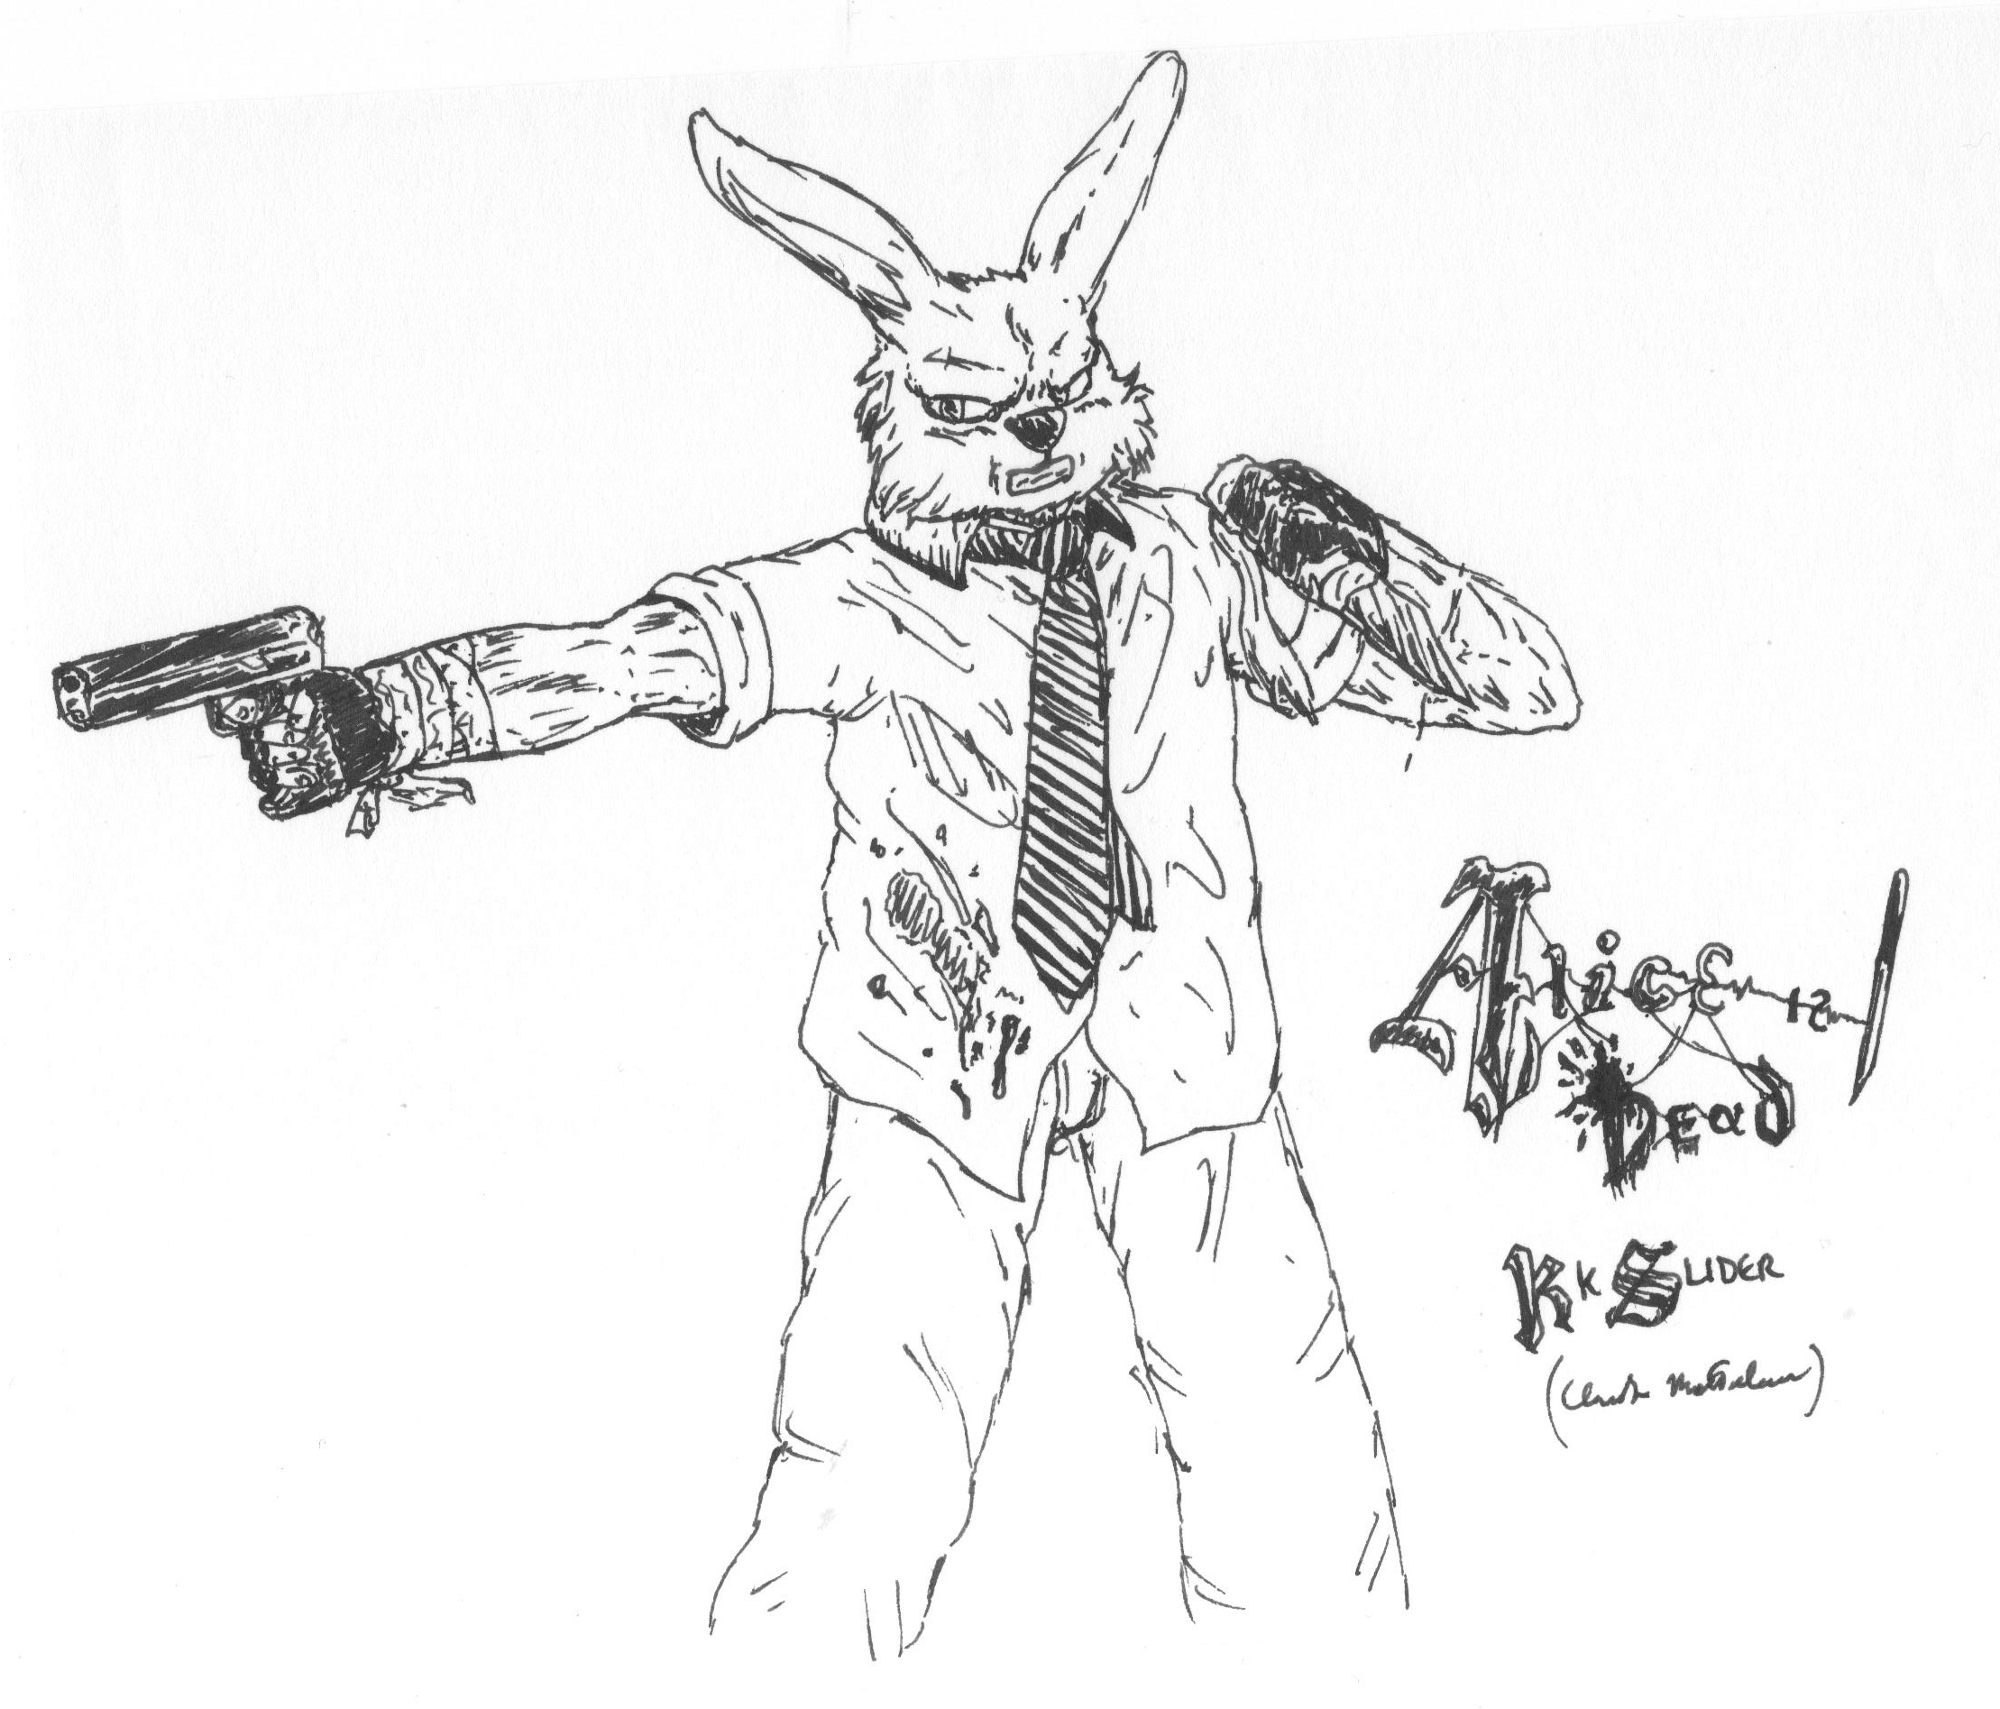 Rabbit (Alice is Dead tribute)